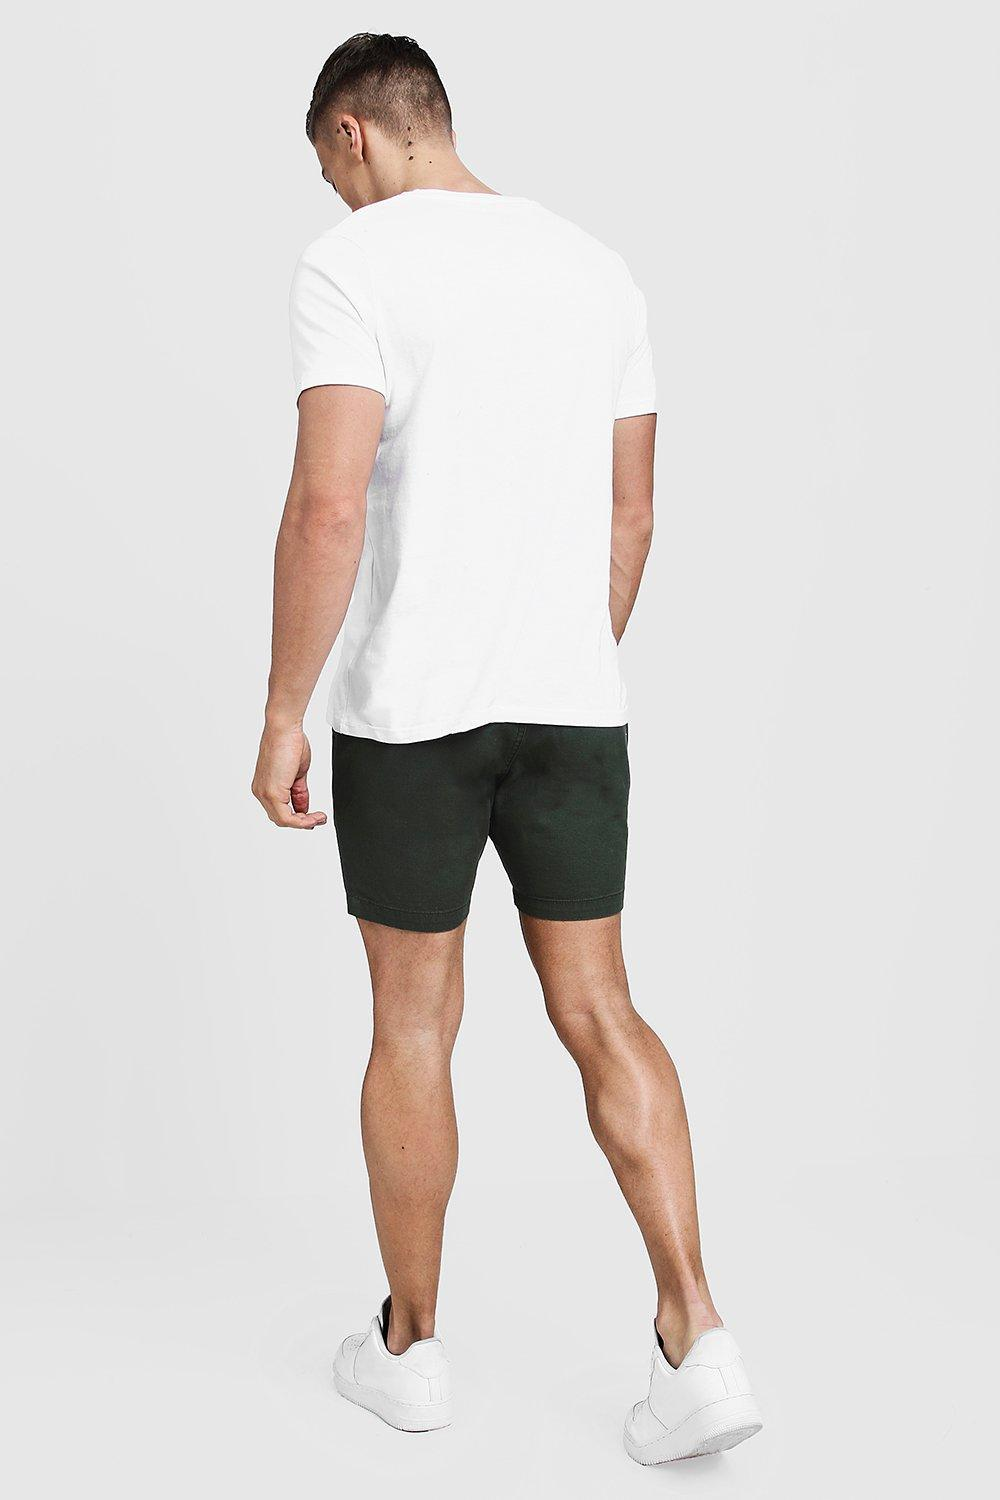 a90f3f630346 Boohoo - Black Slim Fit Rugby Chino Shorts for Men - Lyst. View fullscreen